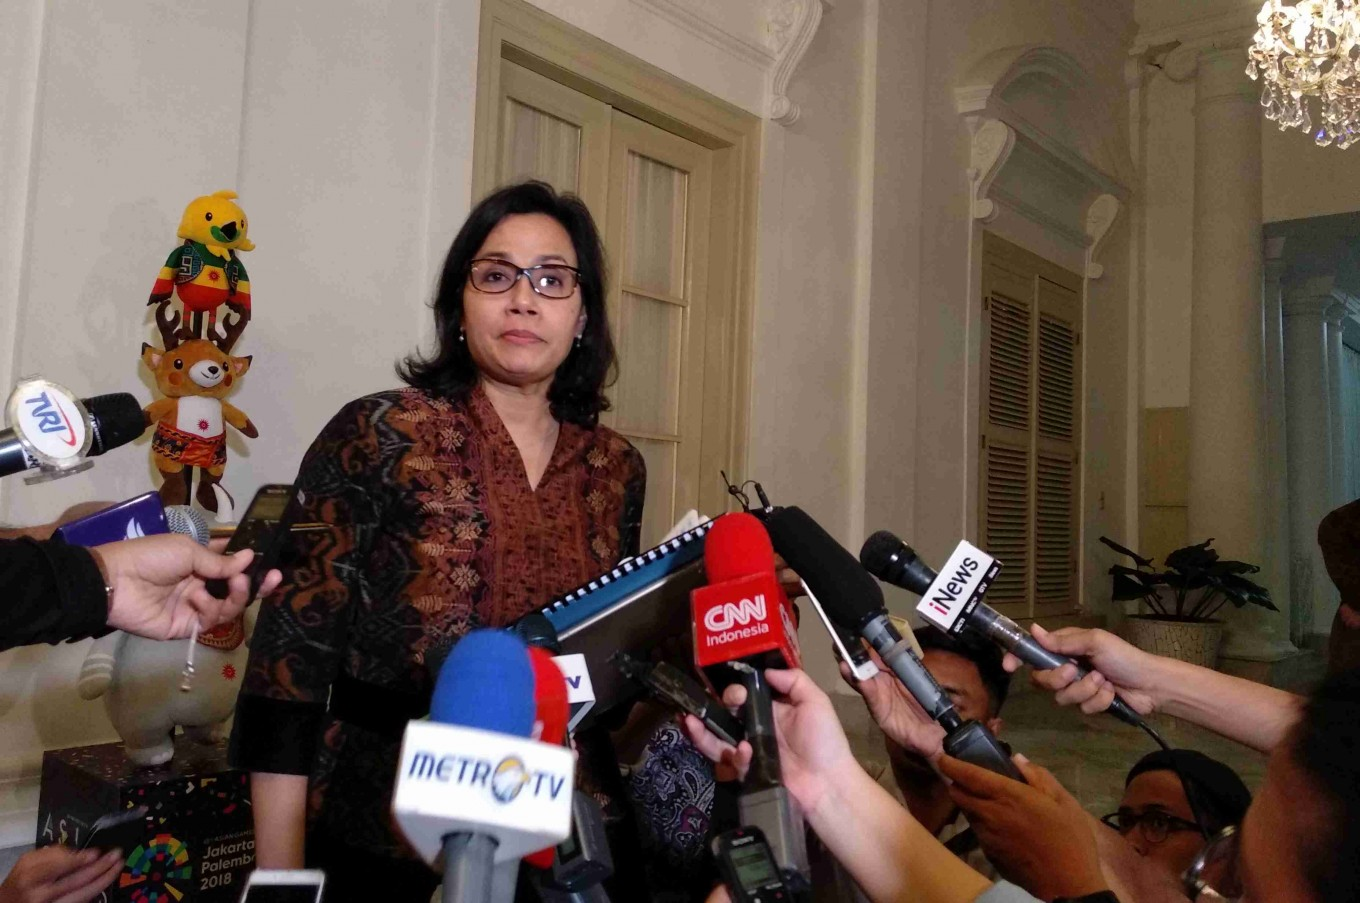 Sri Mulyani declines position on Jokowi's campaign team